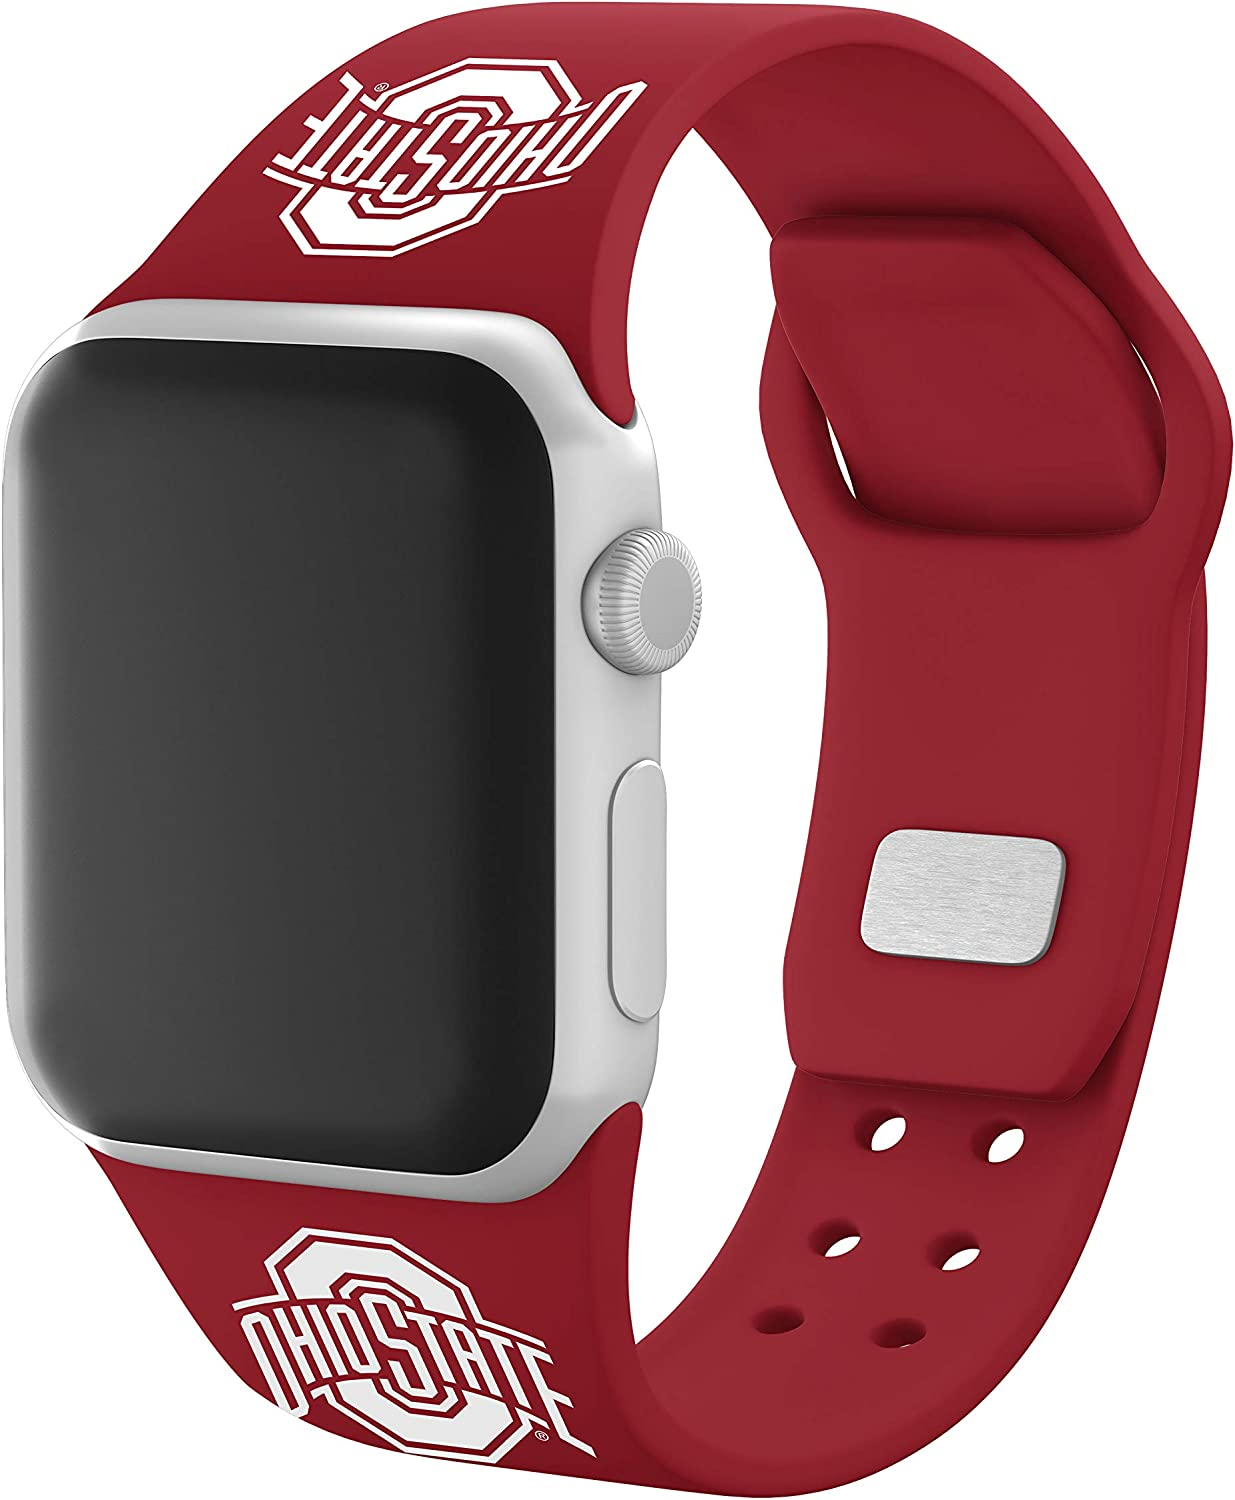 AFFINITY BANDS Ohio State Buckeyes Silicone Sport Watch Band Compatible with Apple Watch (42mm/44mm - Crimson Red)